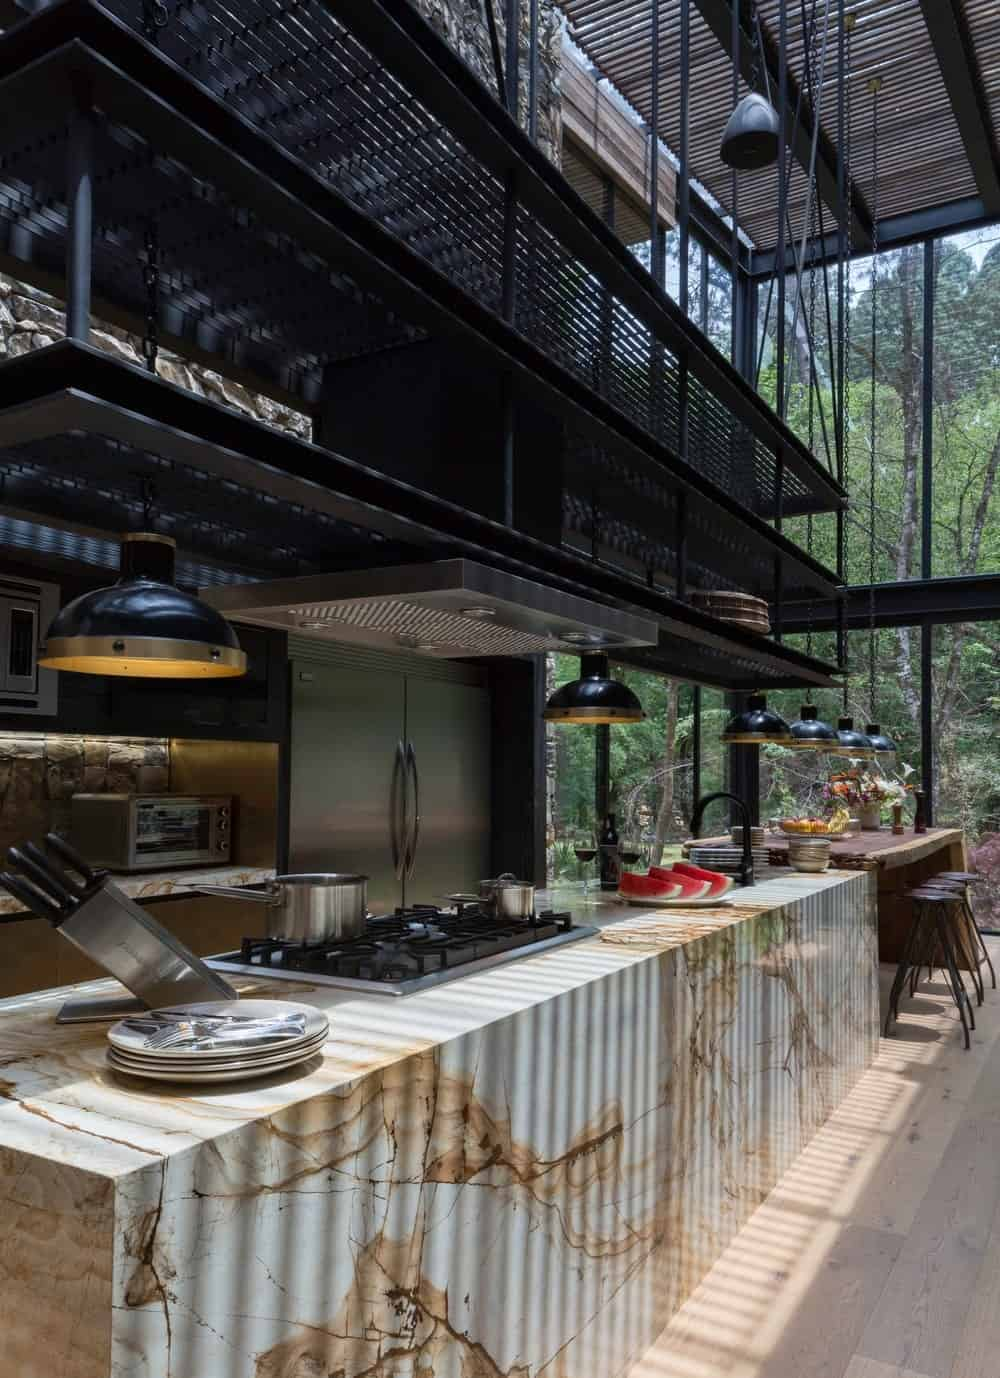 This is a long and narrow kitchen with a large marble waterfall kitchen island topped with metal rungs and has a built-in wooden table at the far end paired with wooden stools.